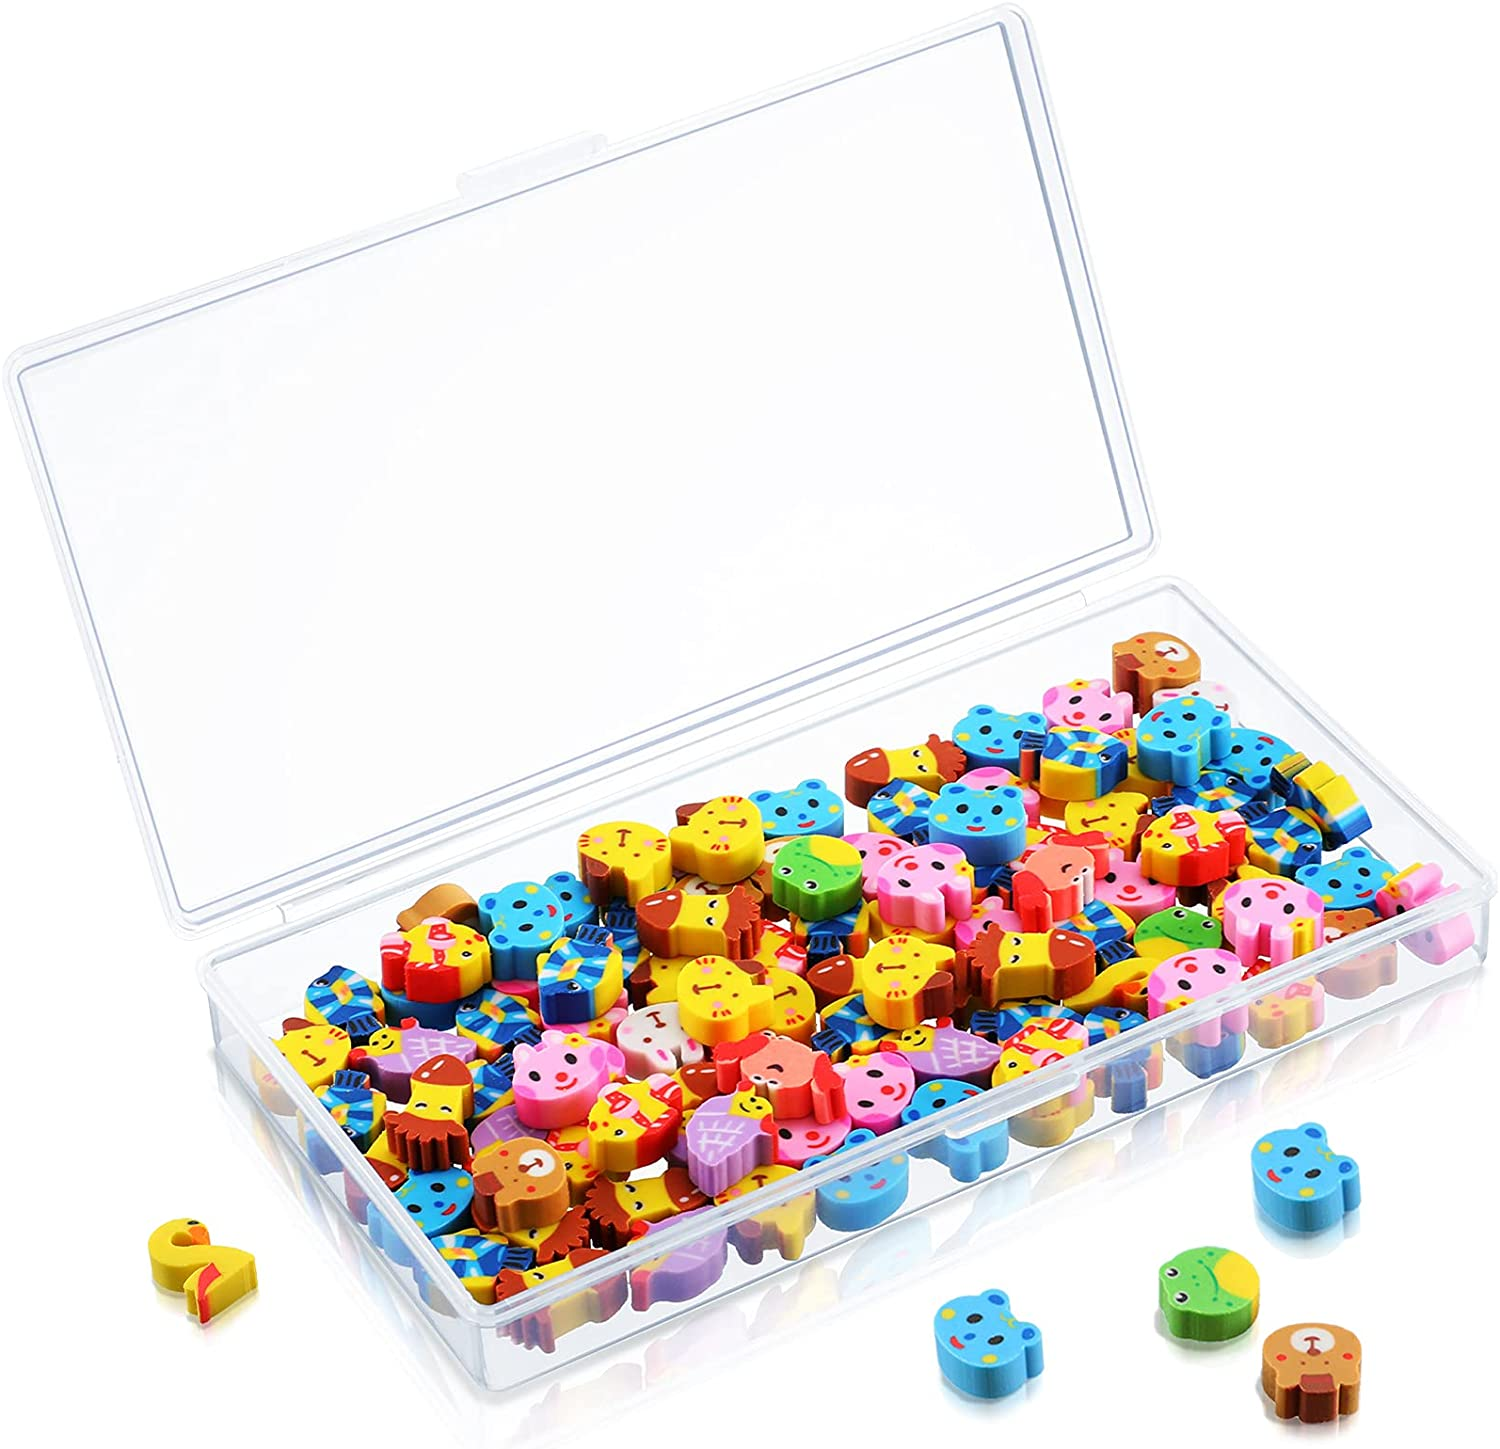 100 Pieces Mini Animal Pencil Erasers Animal Erasers Pack Mini Erasers Assortment Novelty Sea Animal Erasers Mini Pencil Erasers with Storage Box for Party Favor, Gift Filling, Home School Work Reward